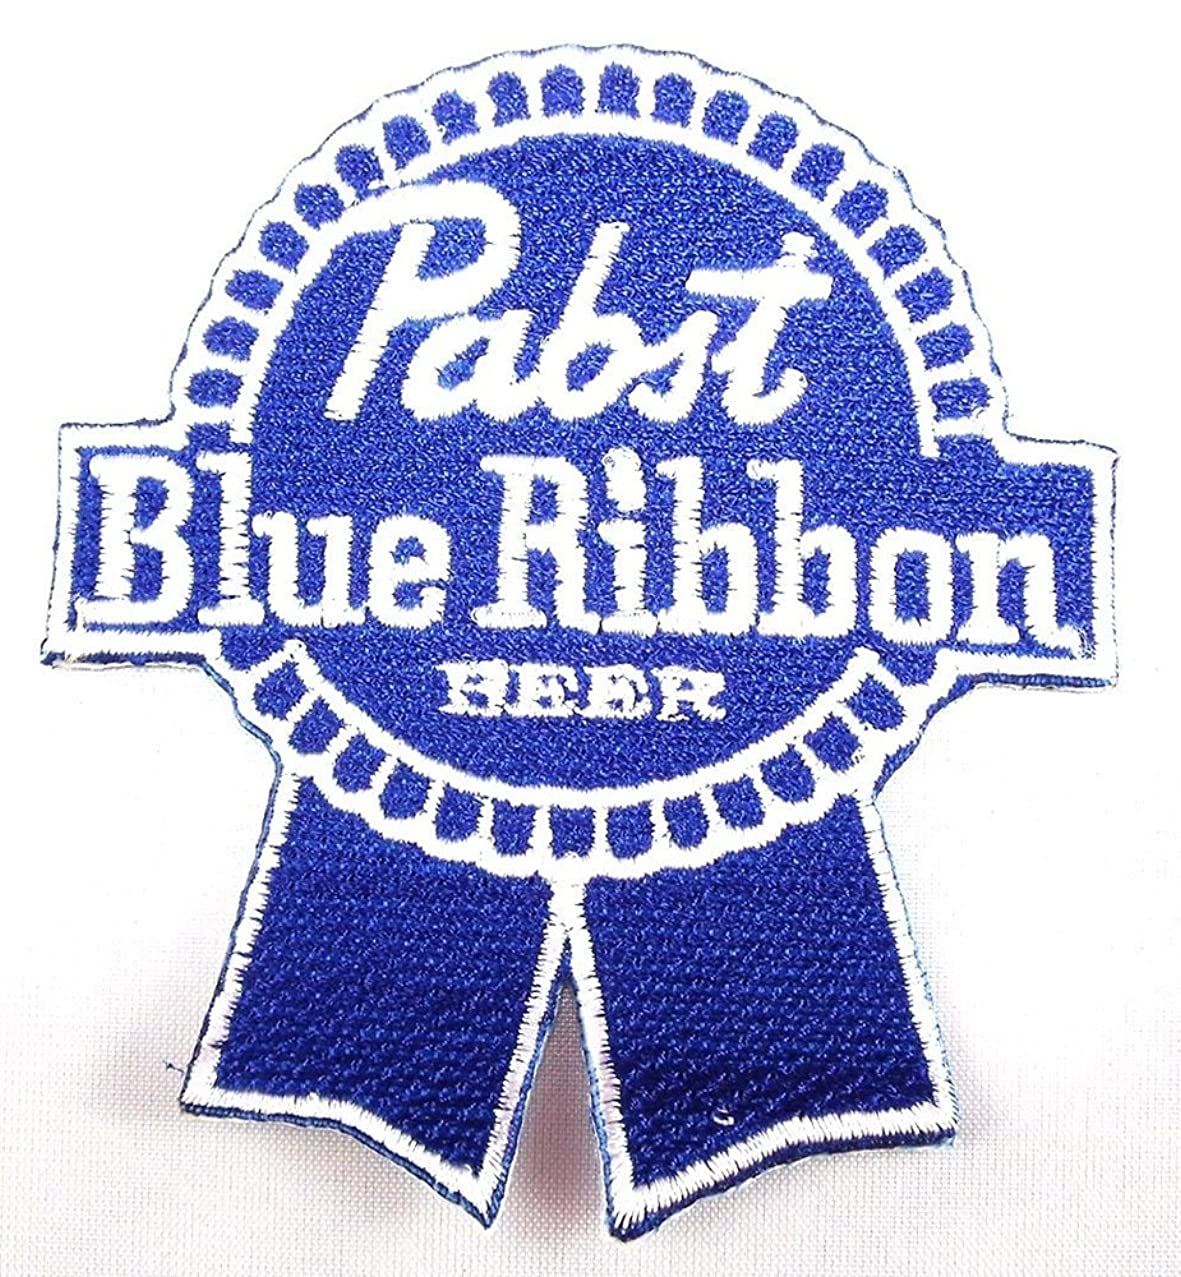 Pabst Blue Ribbon PBR Beer Patches 7x7.8 Cm Iron on Patch/embroidered Patch This Appliques Are Great for T-shirt, Hat, Jean ,Jacket, Backpacks